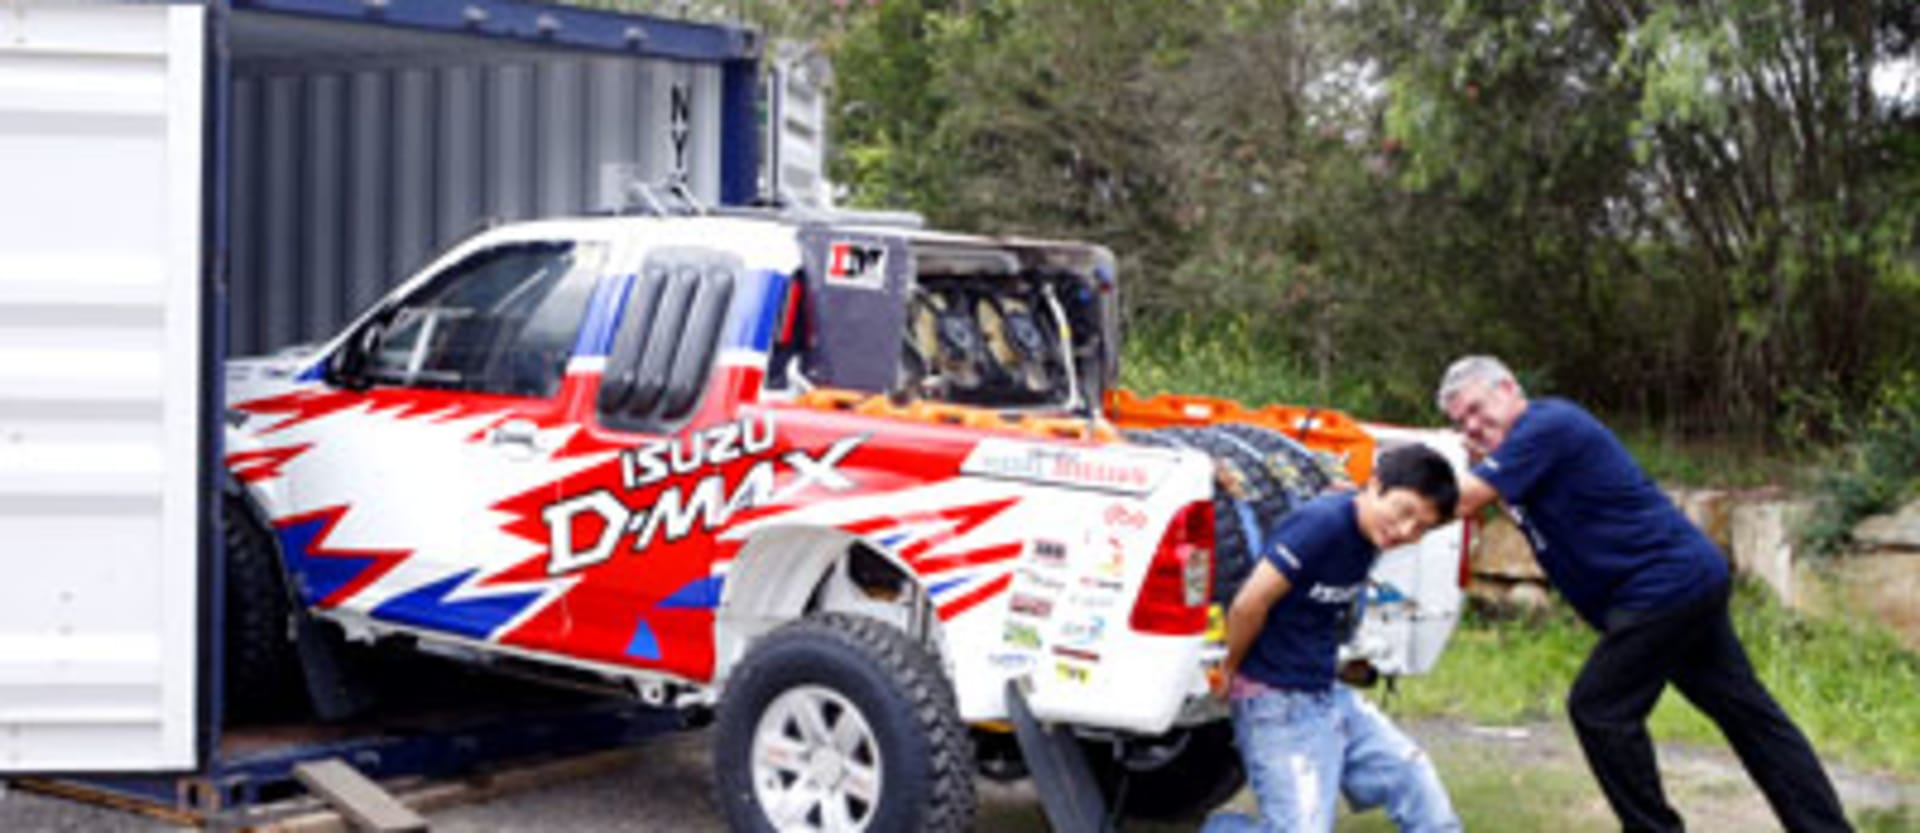 Garland has high hopes for his return to Dakar in 2010